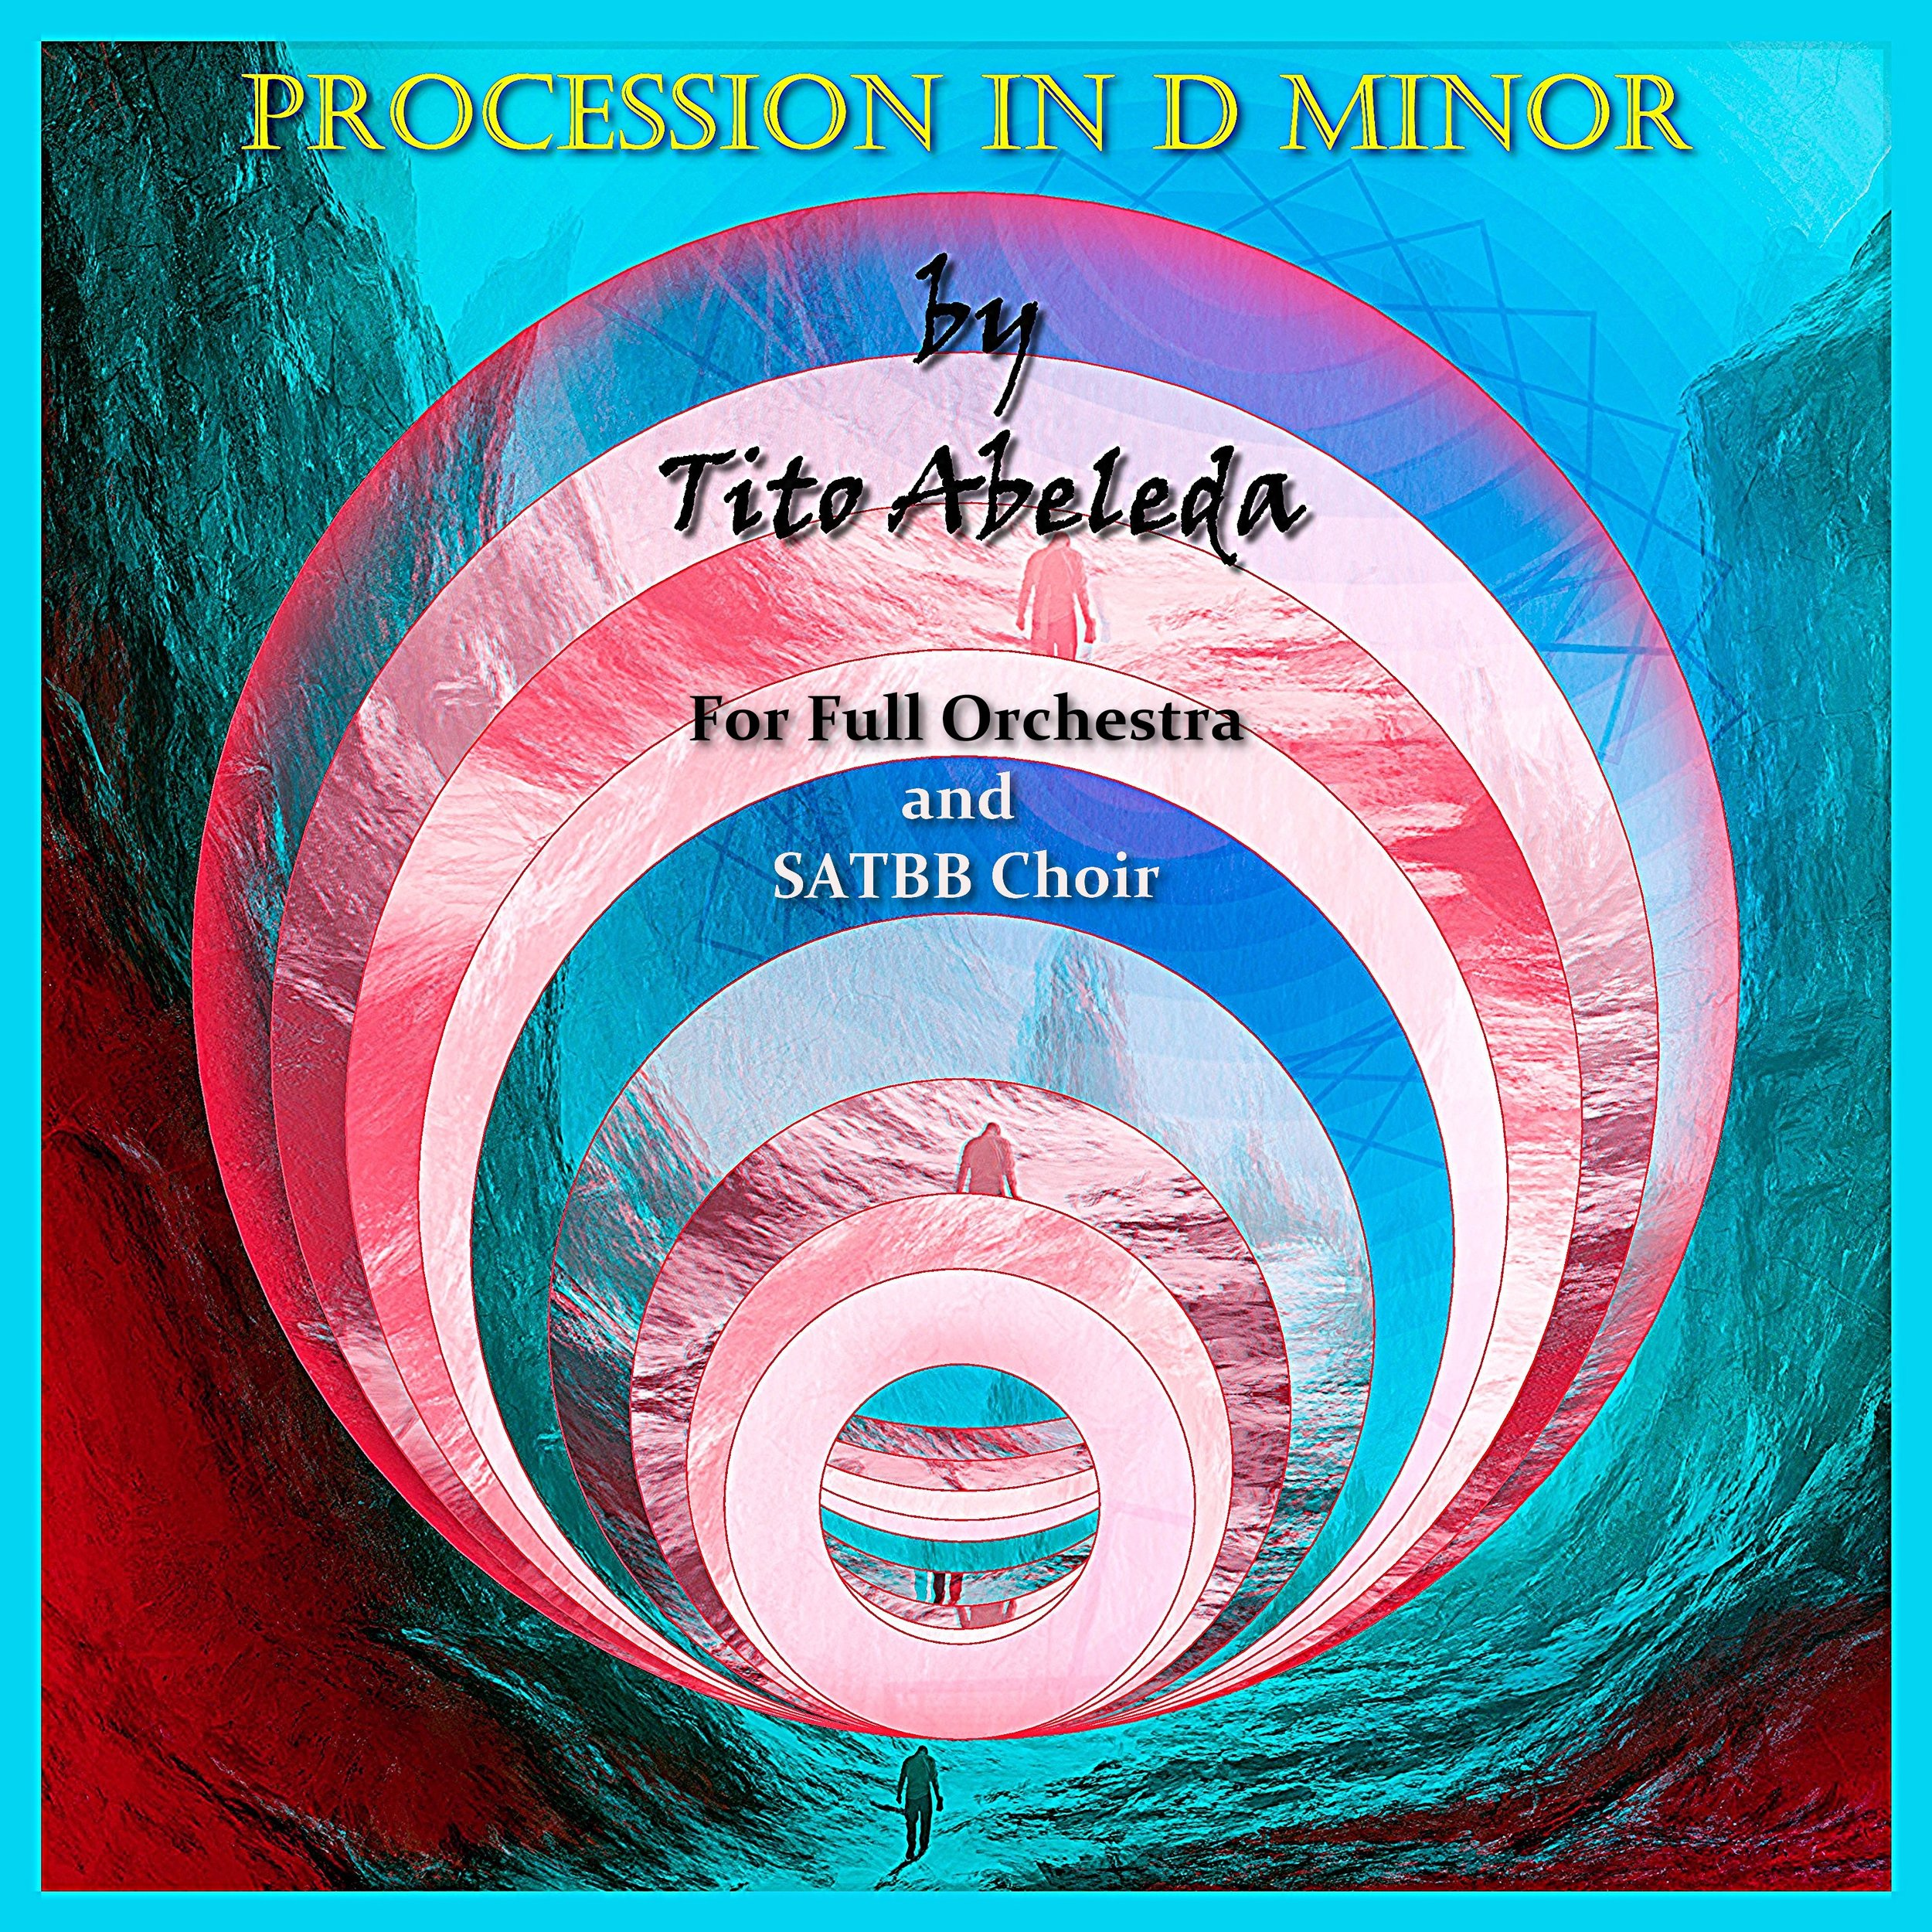 Procession in D Minor (for Orchestra and SATBB Choir)